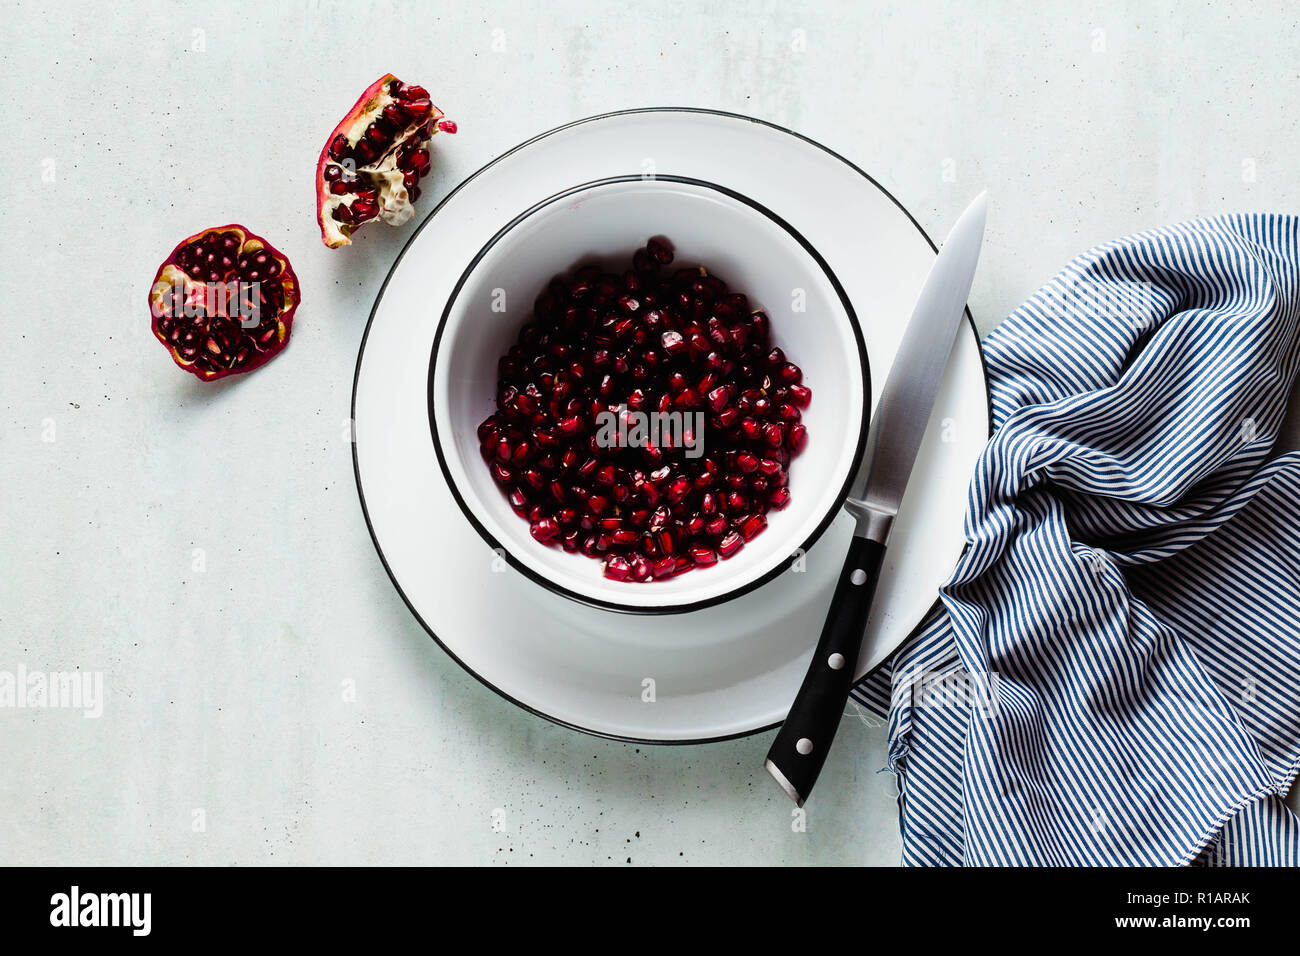 pomegranate seeds in white enamel bowls on the table napkin and